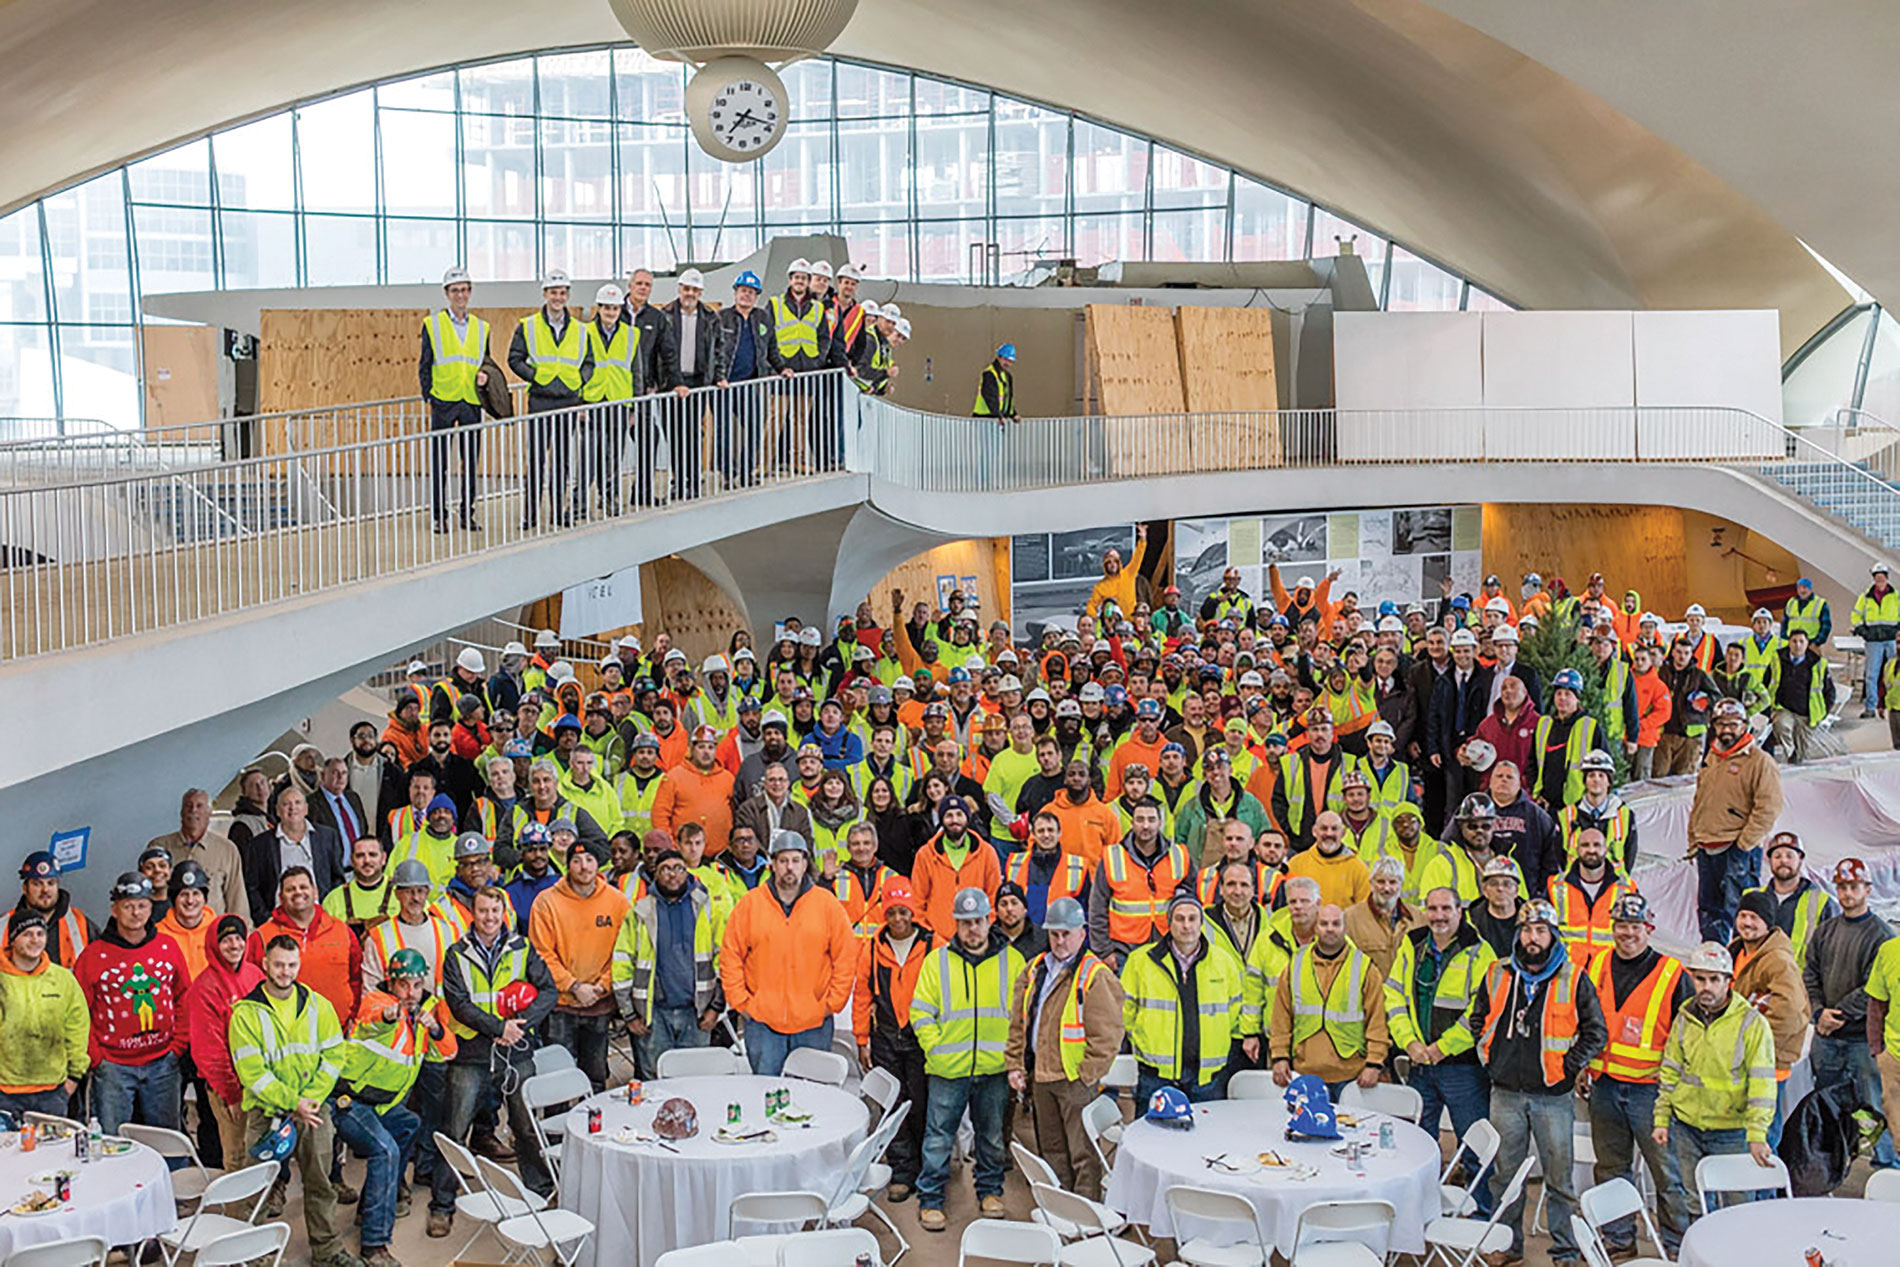 Construction workers and partners at the TWA Hotel Topping Out ceremony. Photo Credit: Berlin Rosen / Balthazar Korab